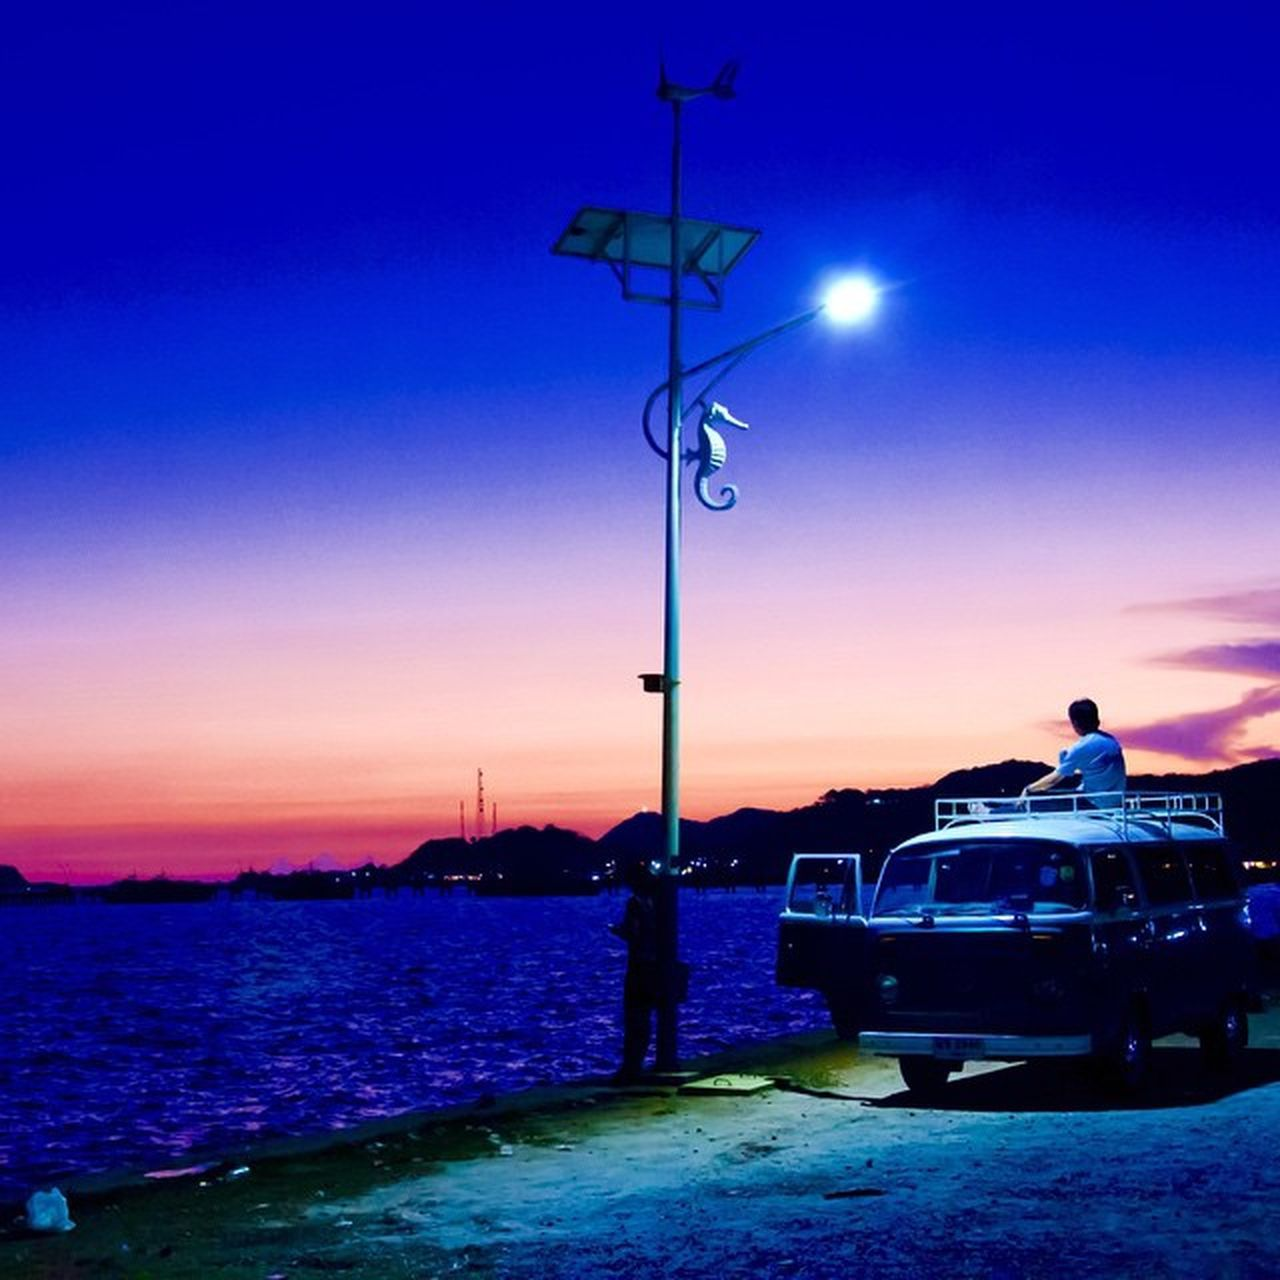 sunset, transportation, mode of transport, car, silhouette, sky, land vehicle, street light, nature, illuminated, outdoors, sea, real people, water, beauty in nature, clear sky, blue, day